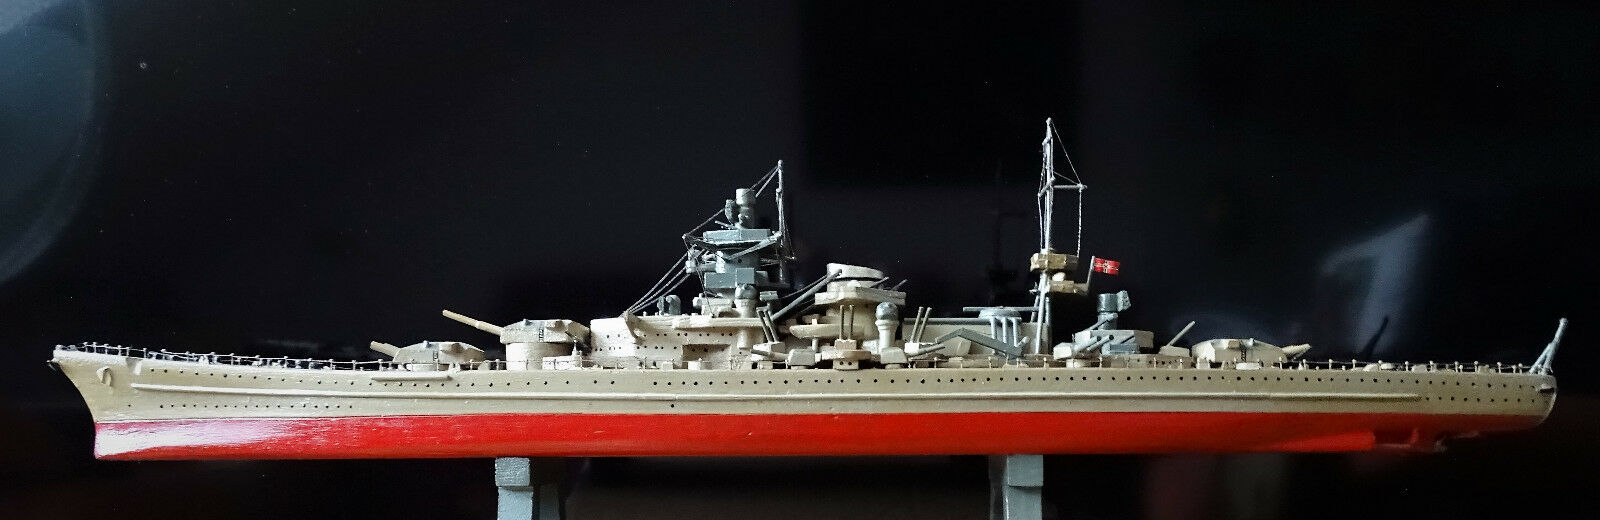 Antique Ship Model 2.wk Navy German Battleship Scharnhorst 80 cm